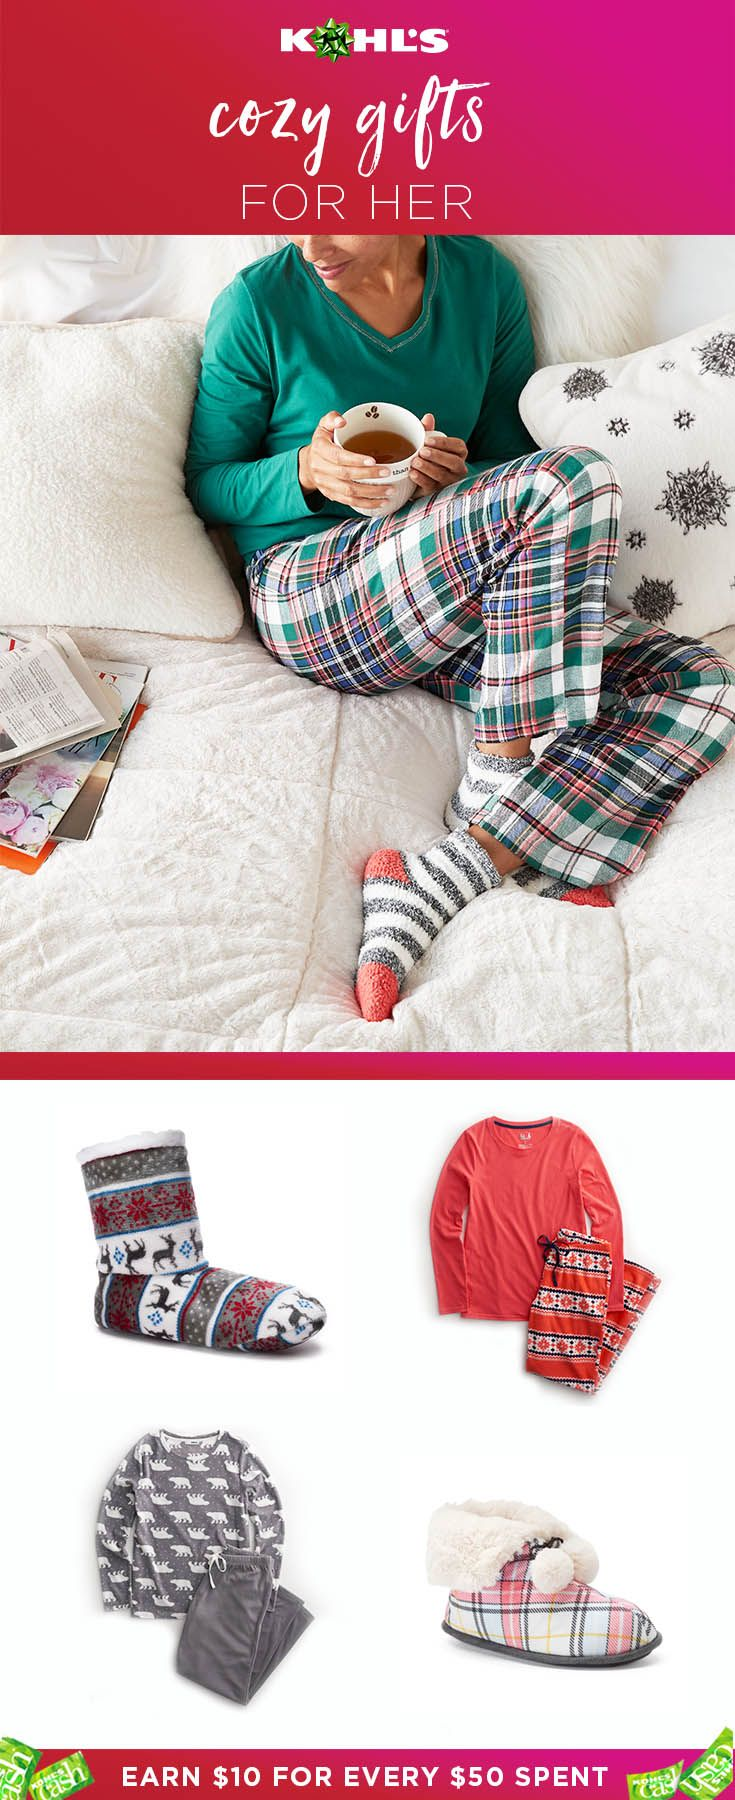 Who wouldn't want to cozy up with a new pair of pajamas or slippers on Christmas morning? Make sure she has the coziest winter yet with cute pajama sets and slippers under the tree. Plus, earn $10 Kohl's Cash for every $50 you spend. Find all the best Christmas presents at Kohl's. #shopping #gifts